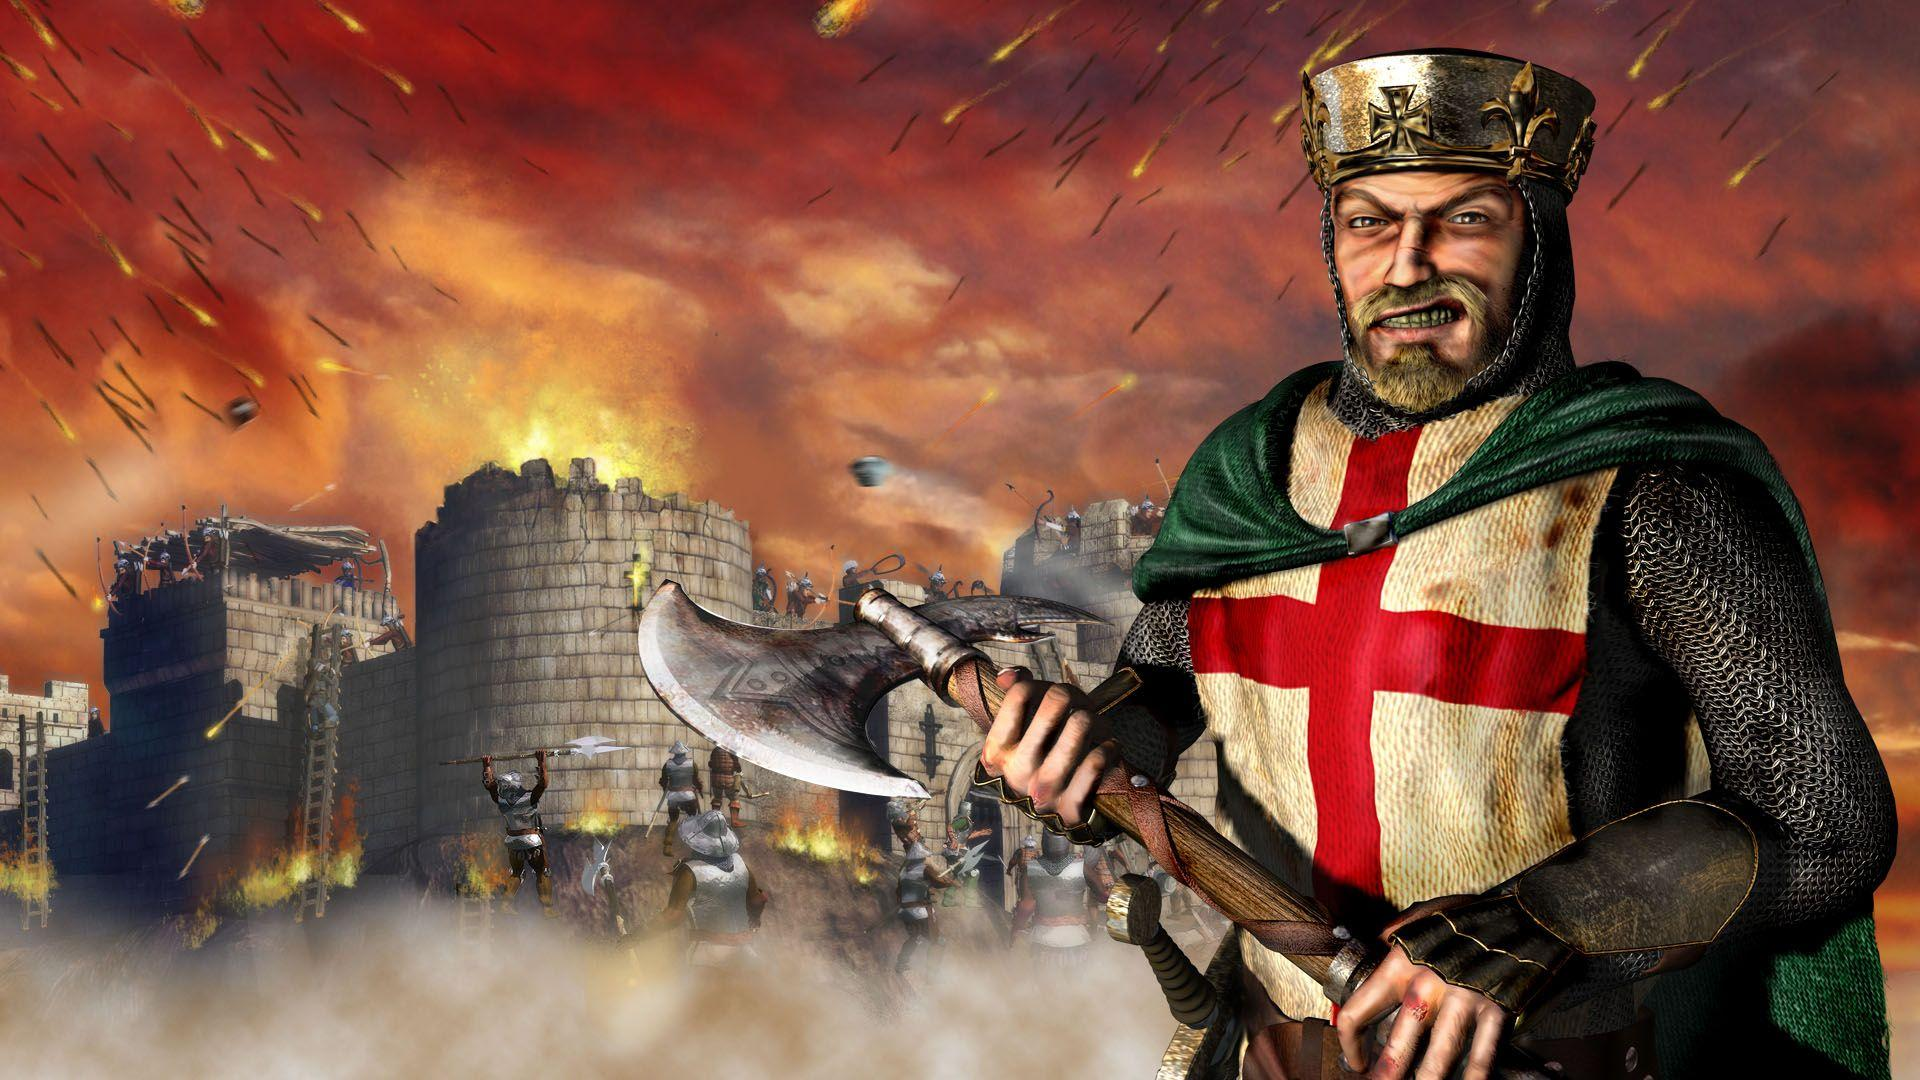 Wallpapers Wallpapers from Stronghold: Crusader II